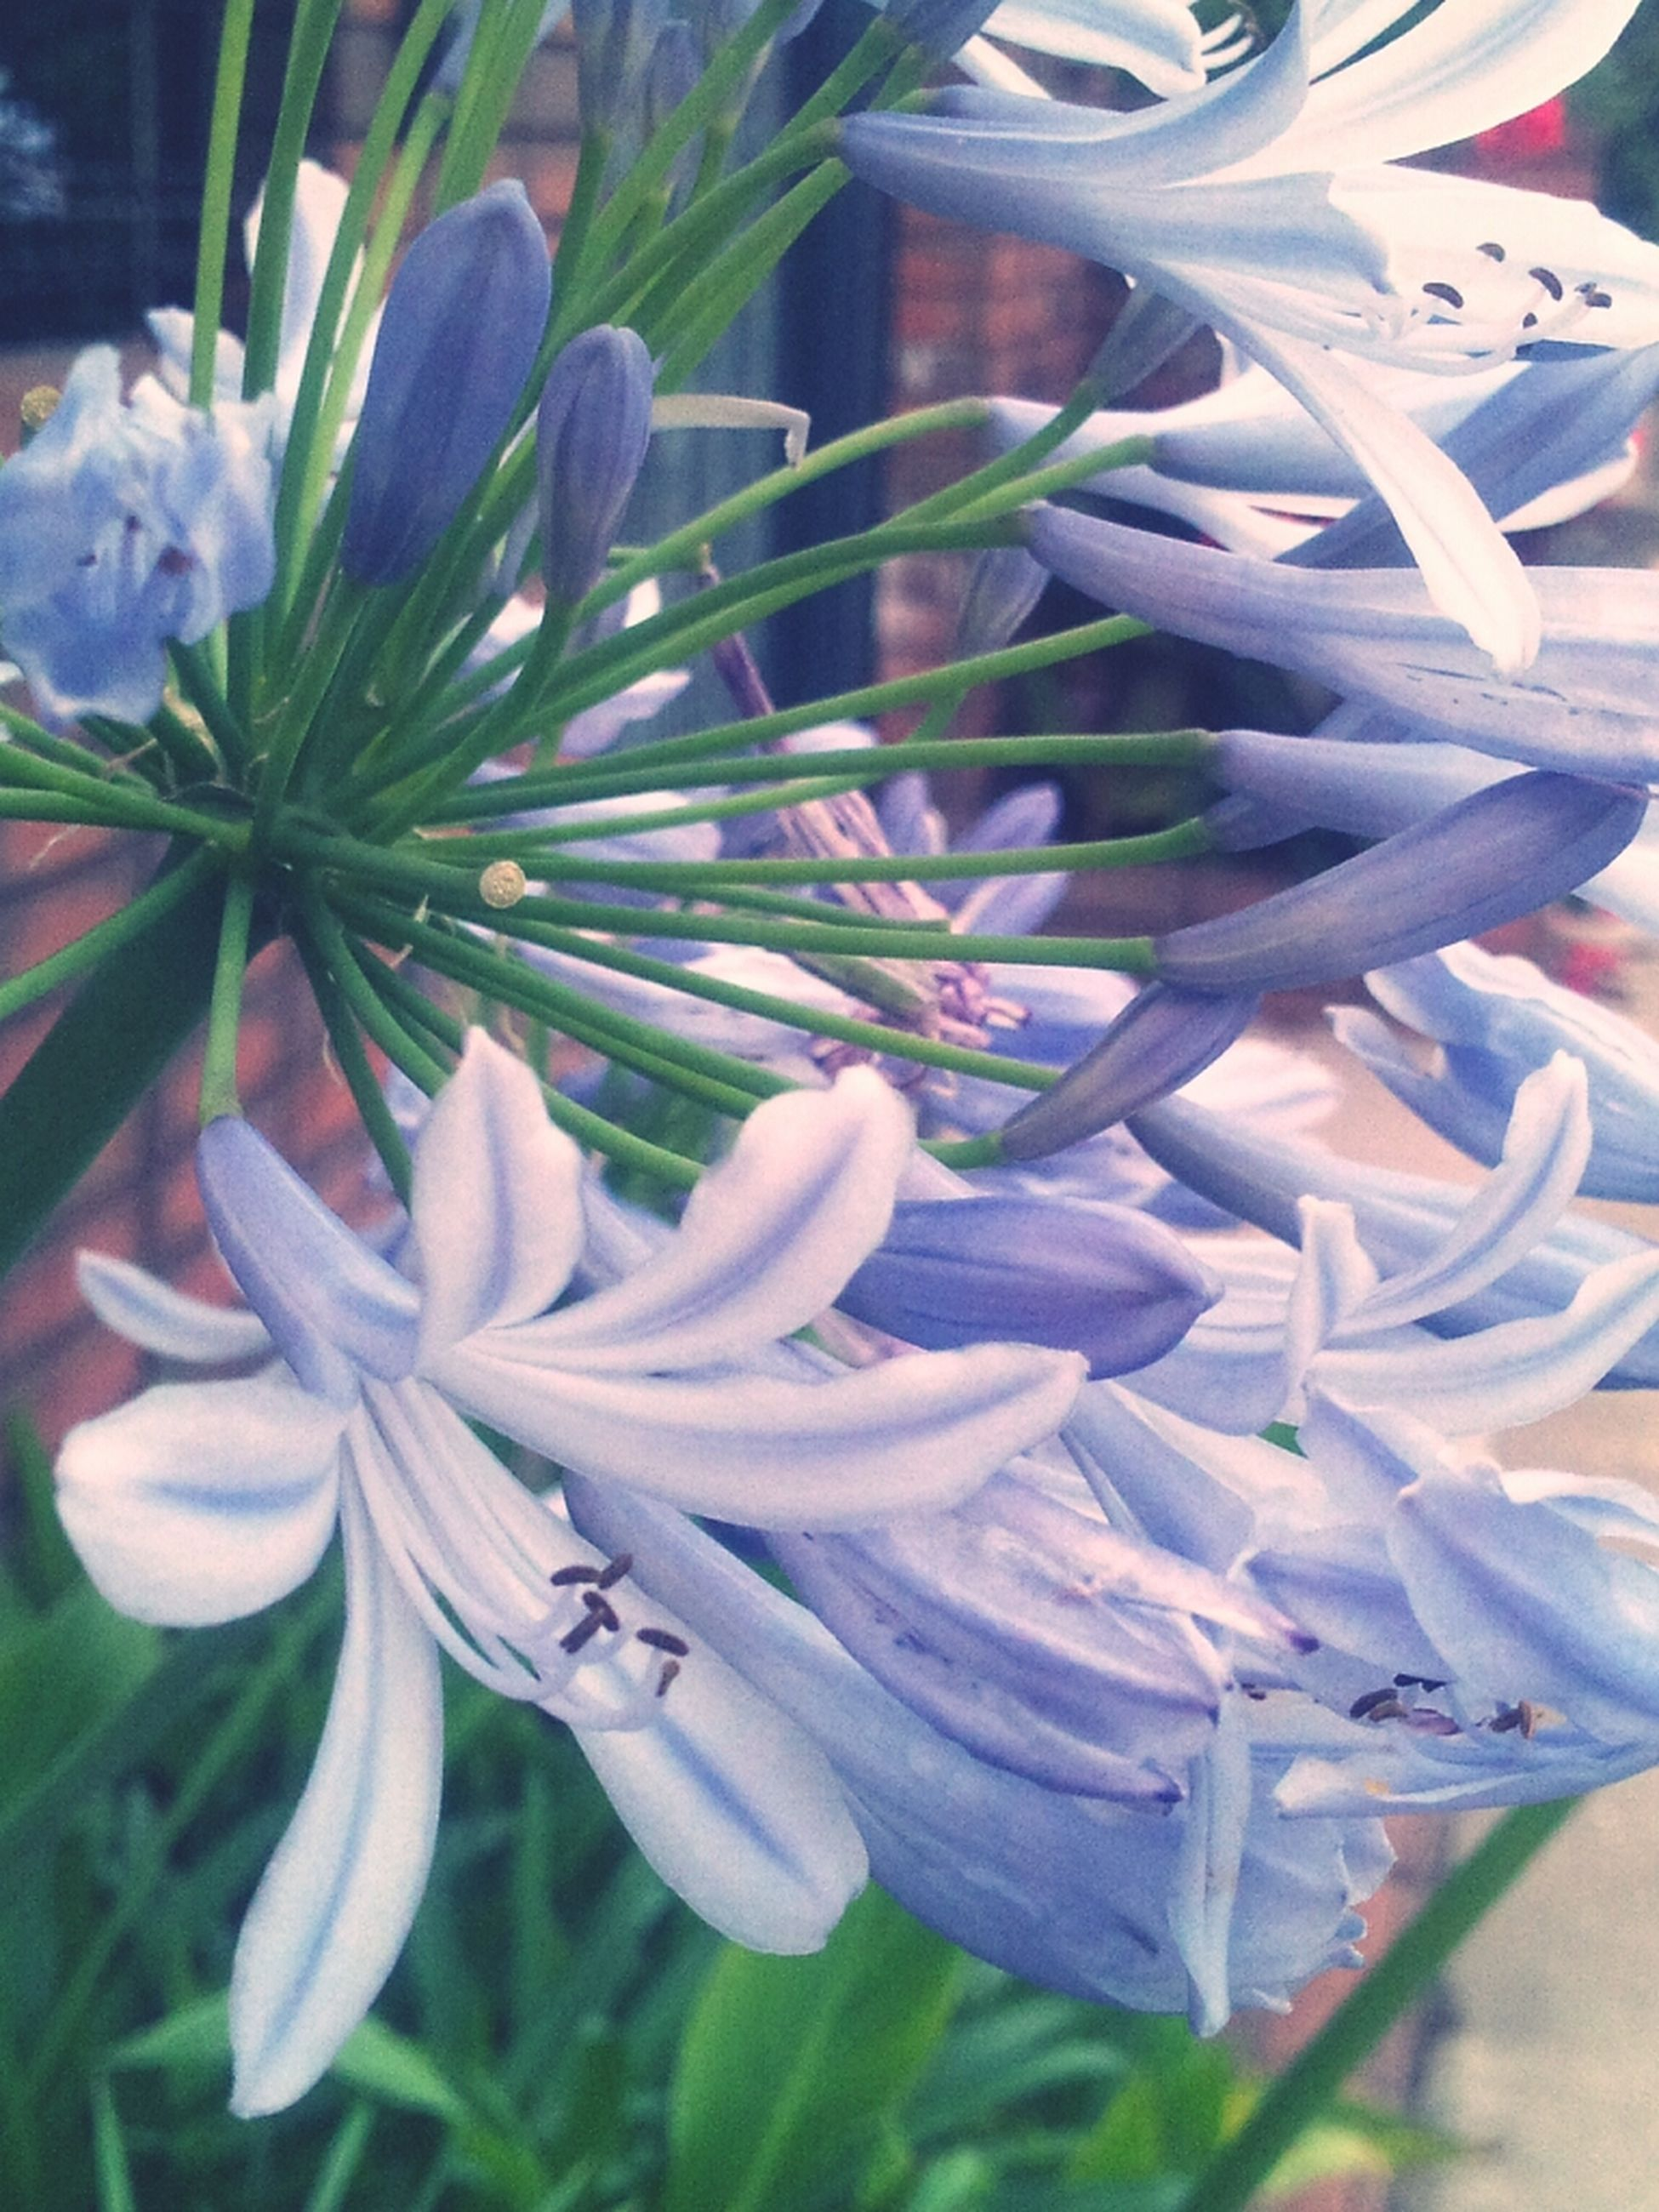 flower, petal, fragility, freshness, flower head, growth, beauty in nature, plant, close-up, blooming, nature, white color, focus on foreground, in bloom, purple, leaf, no people, park - man made space, day, stem